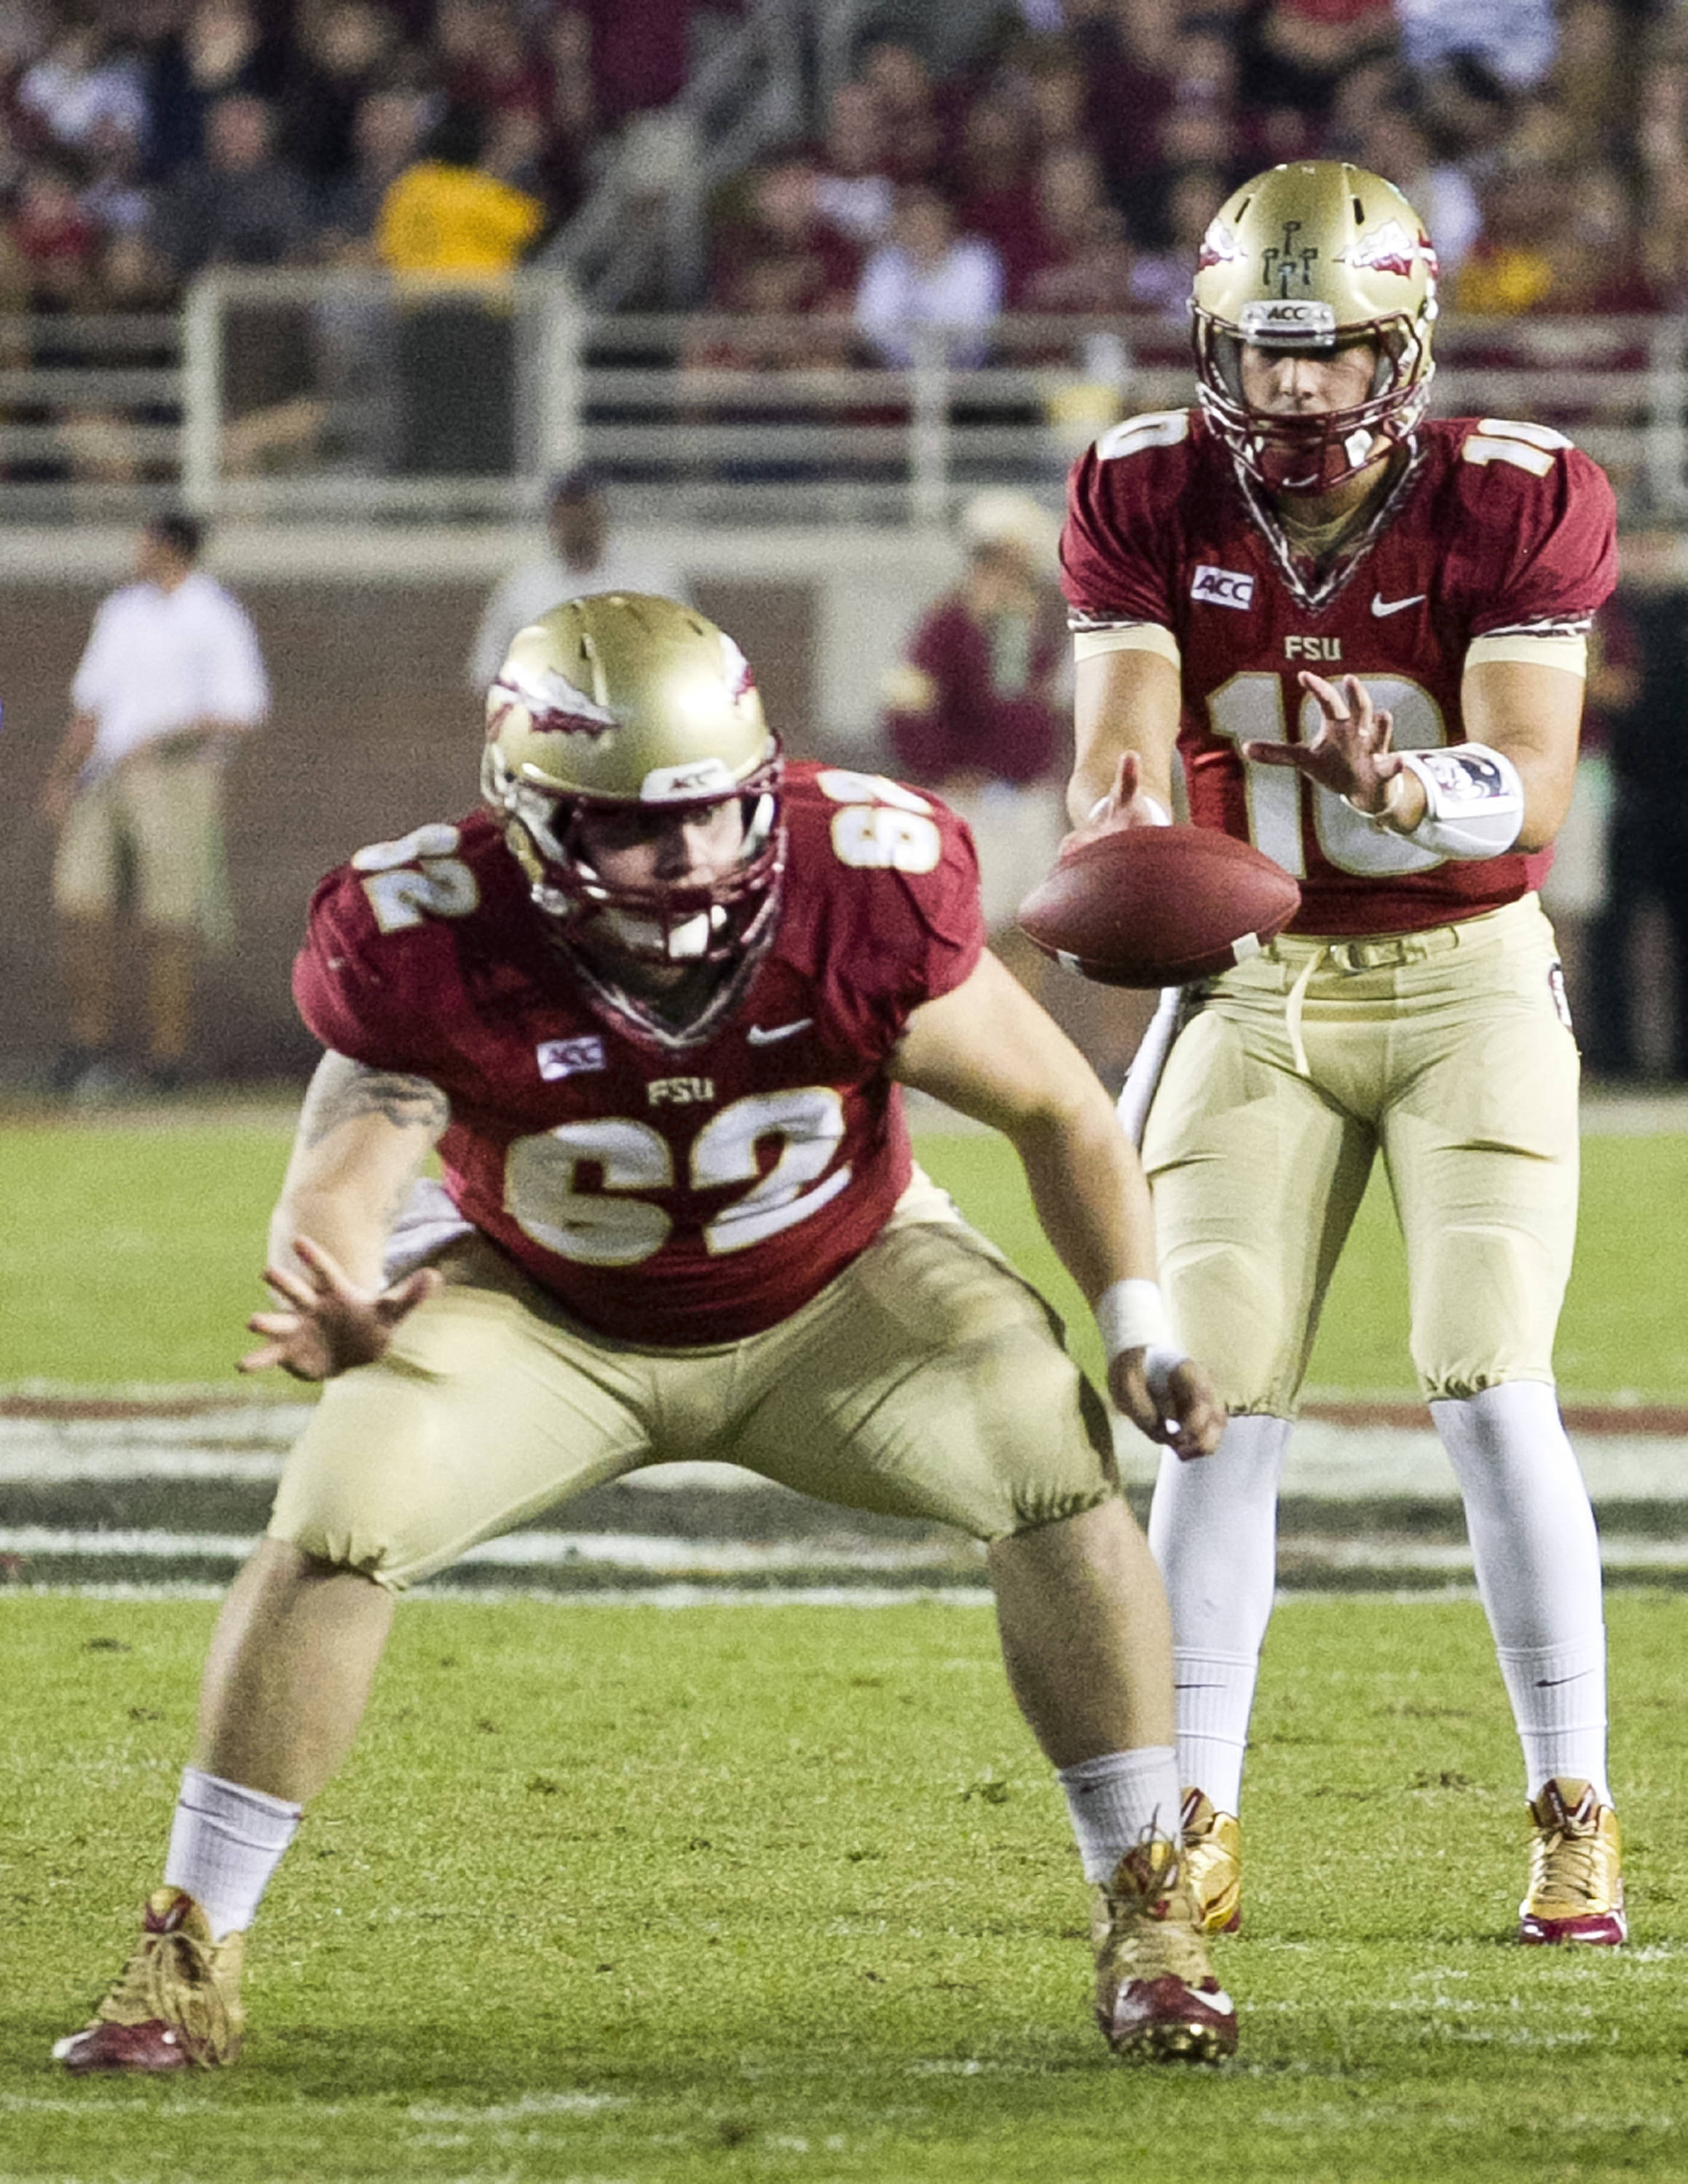 Austin Barron (62), Sean Maguire (10), FSU vs Syracuse, 11-16-13, (Photo by Steve Musco)